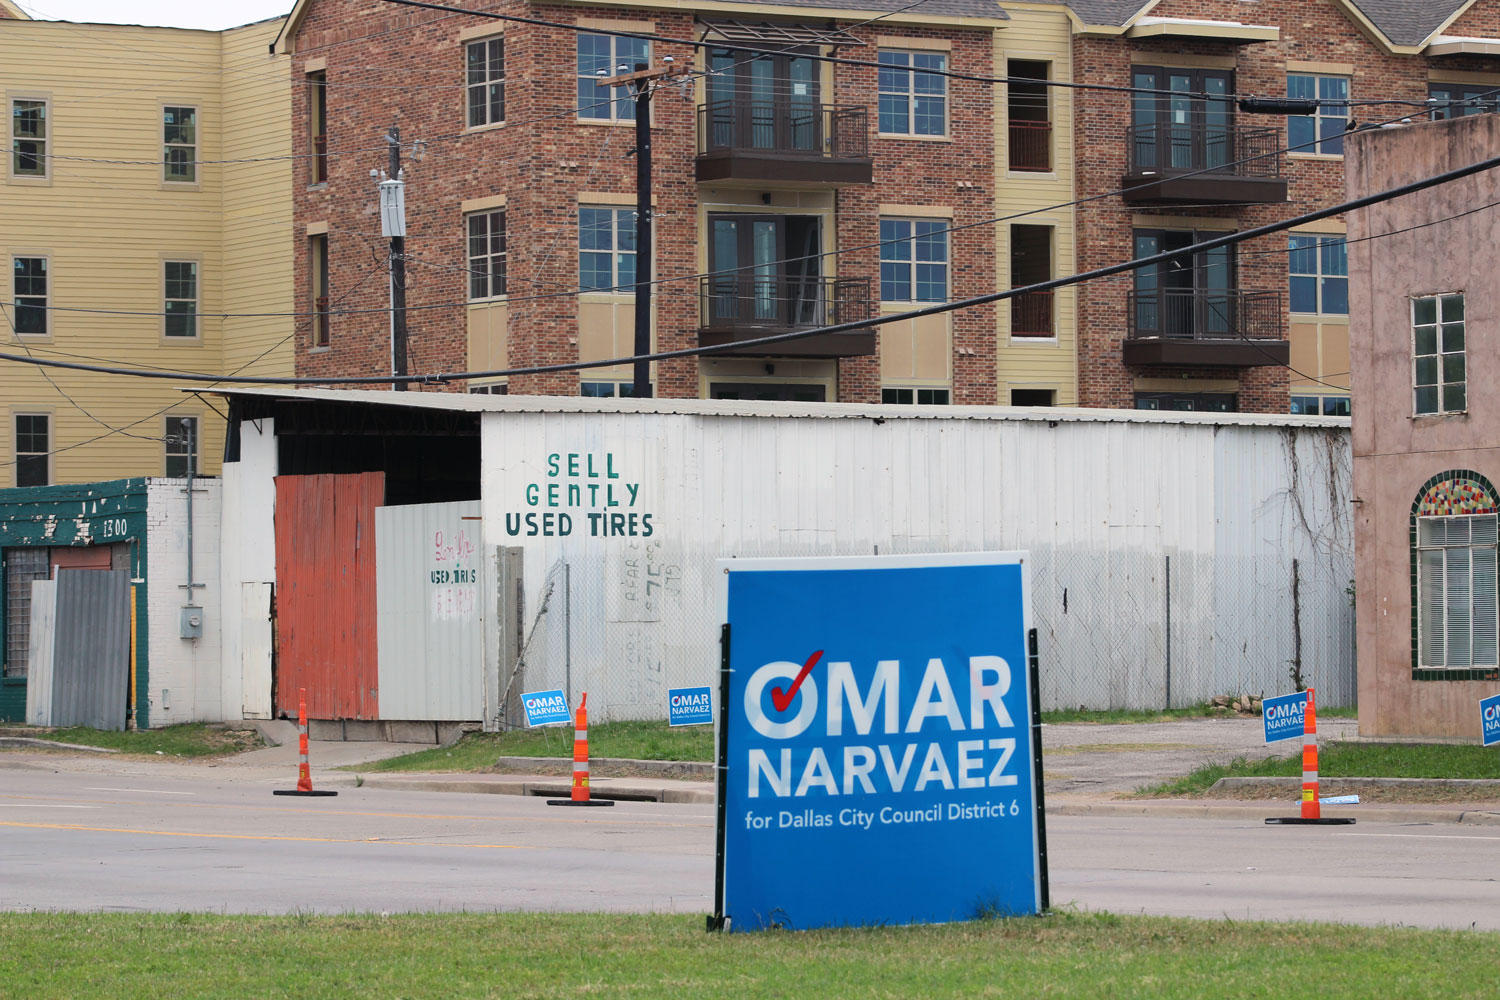 A campaign sign for Dallas City Council candidate Omar Narvaez sits along Singleton Boulevard in West Dallas. Narvaez is facing incumbent Monica Alonzo in a runoff next month in a part of the city where officials suspect mail-in voter fraud may have occurred.